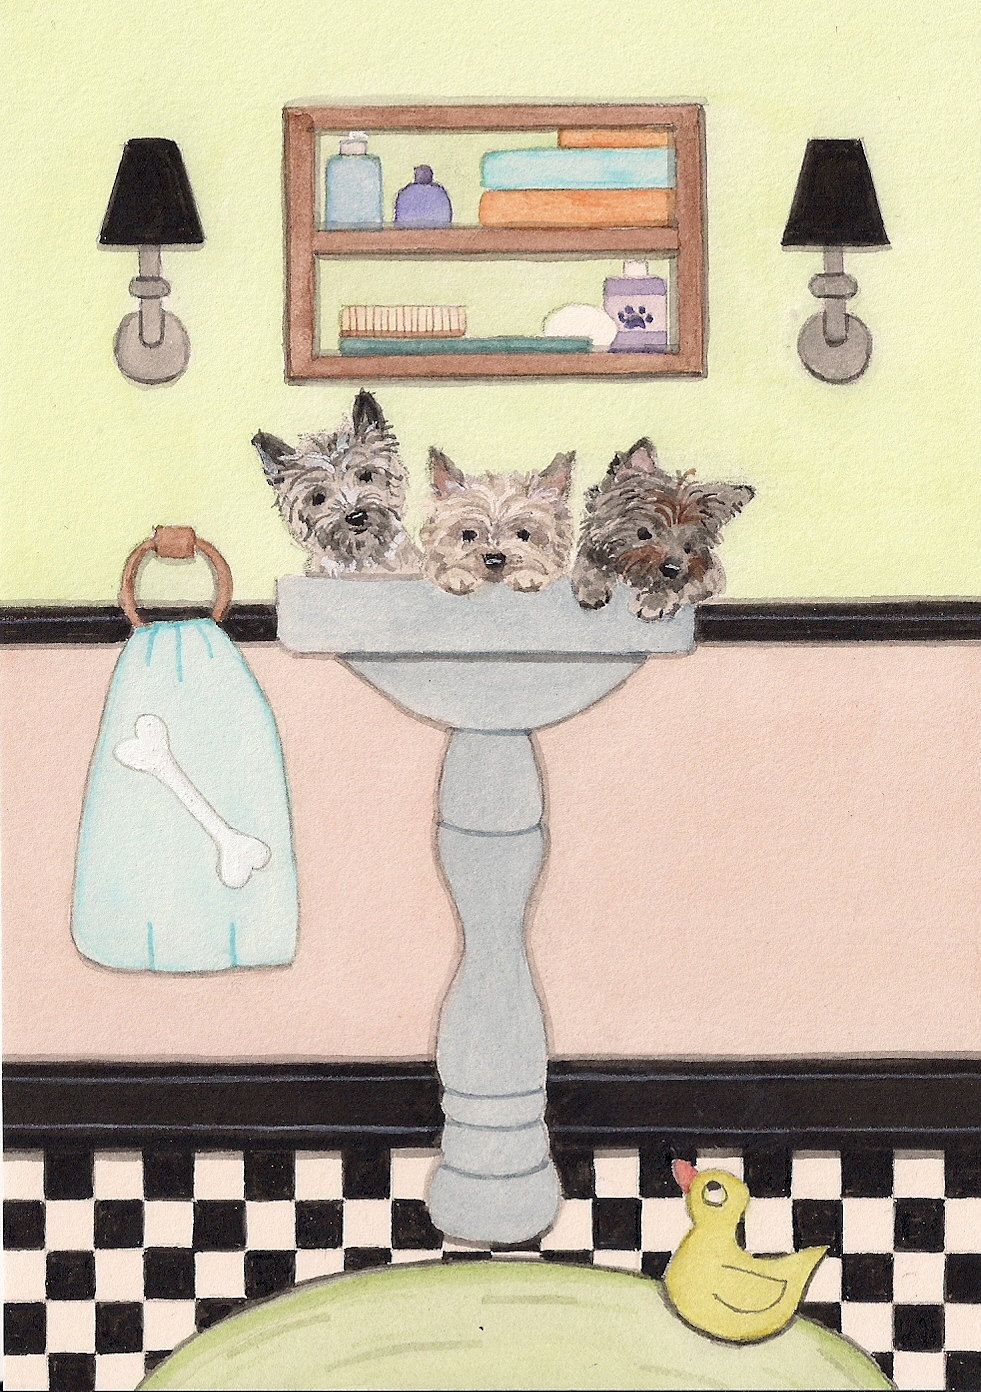 Even newer one:  Cairn terrier puppies fill sink at bath time / Lynch signed folk art print by watercolorqueen on Etsy